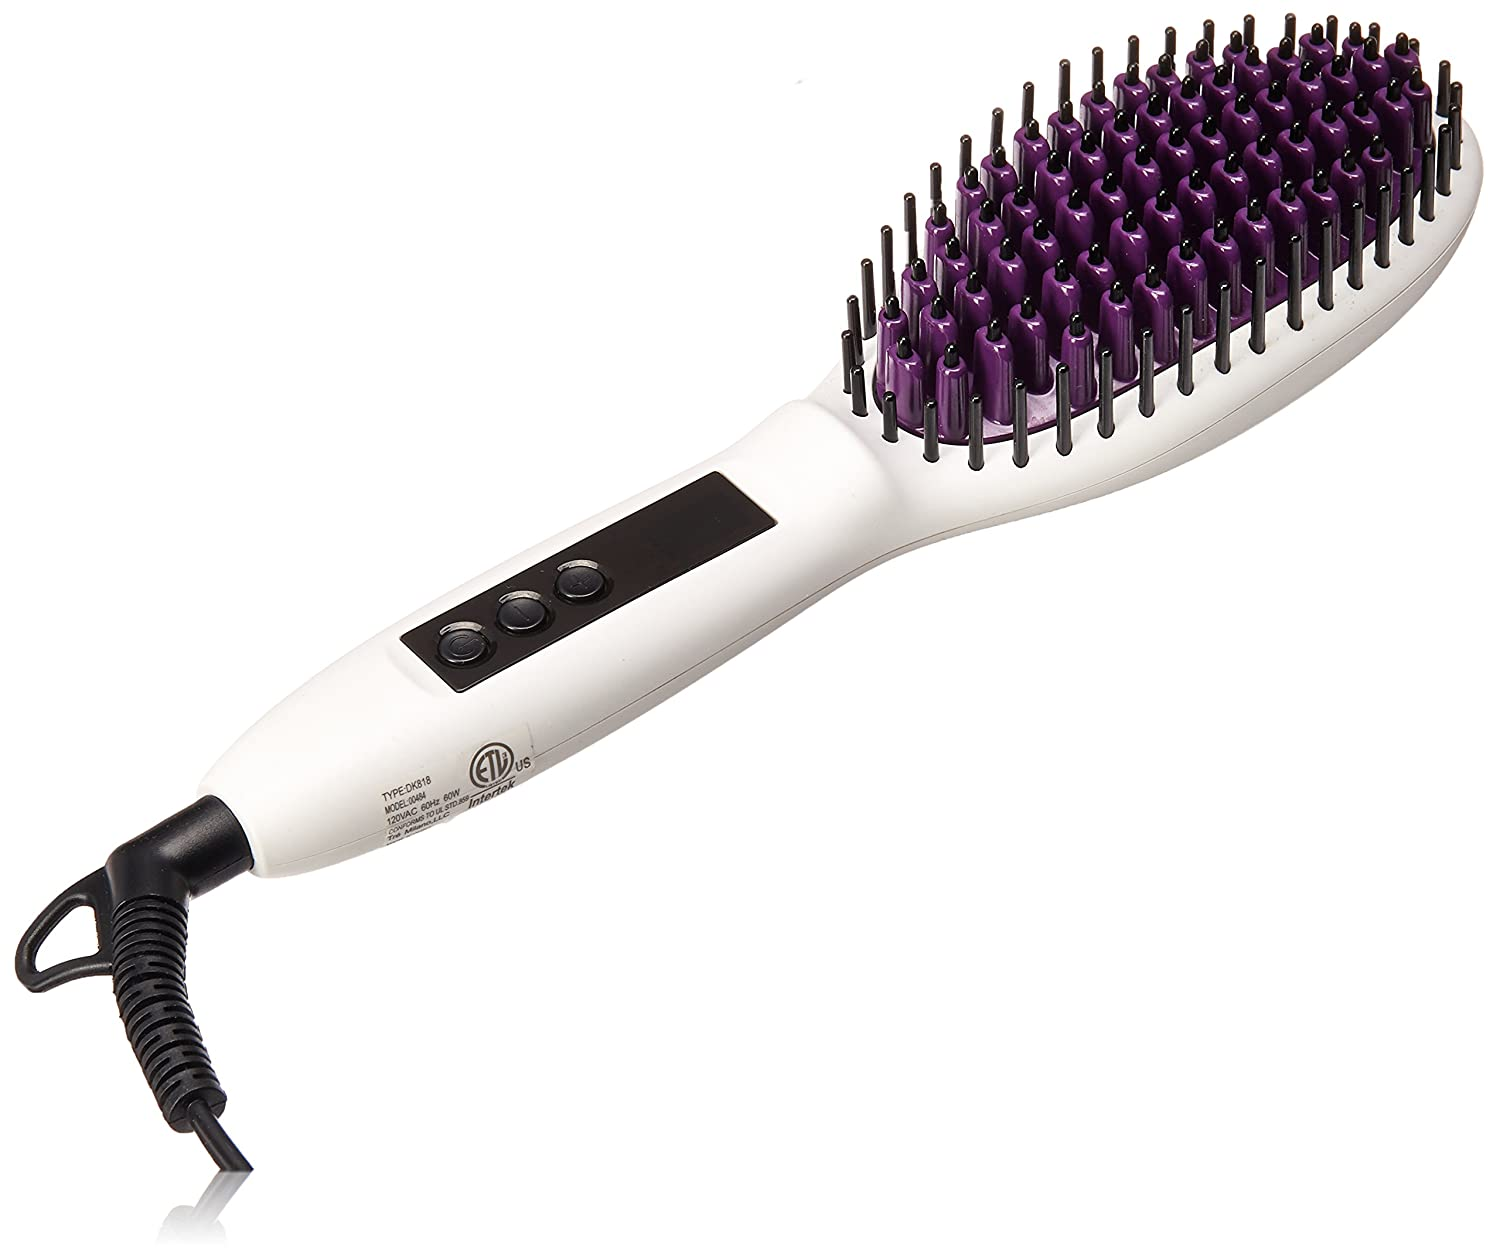 Top 10 Best Hair Straightener Brush – Hair Straightening Reviews in 2020 5